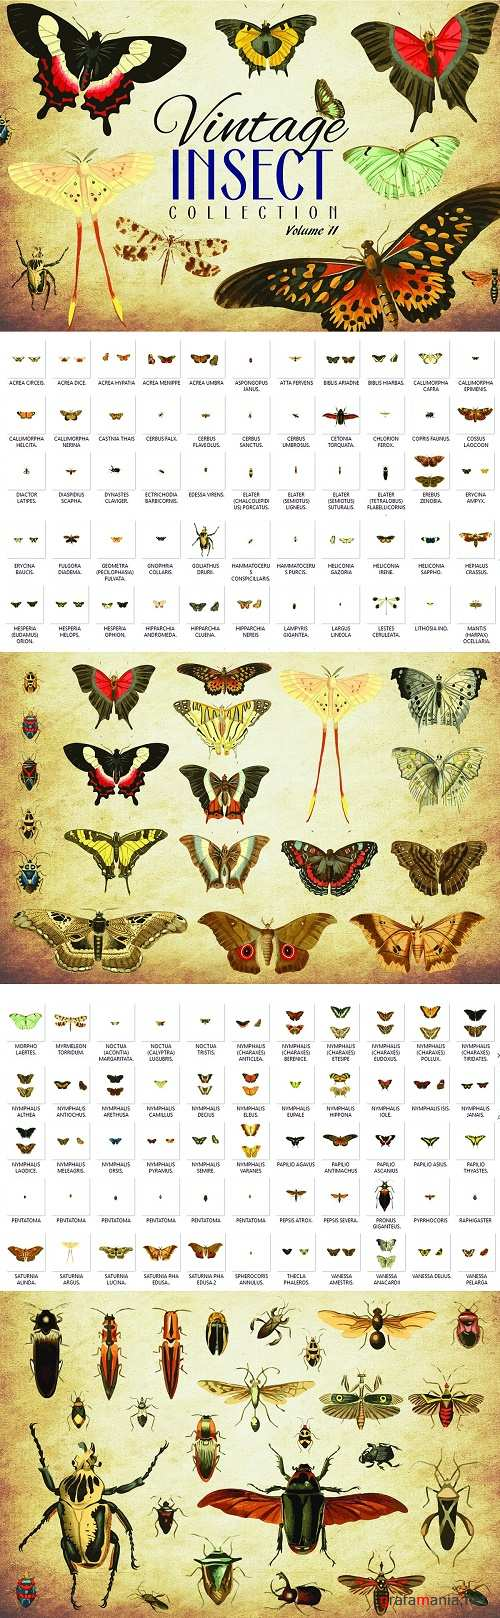 110 Vintage Insect Vector Graphics 2 - 3481948